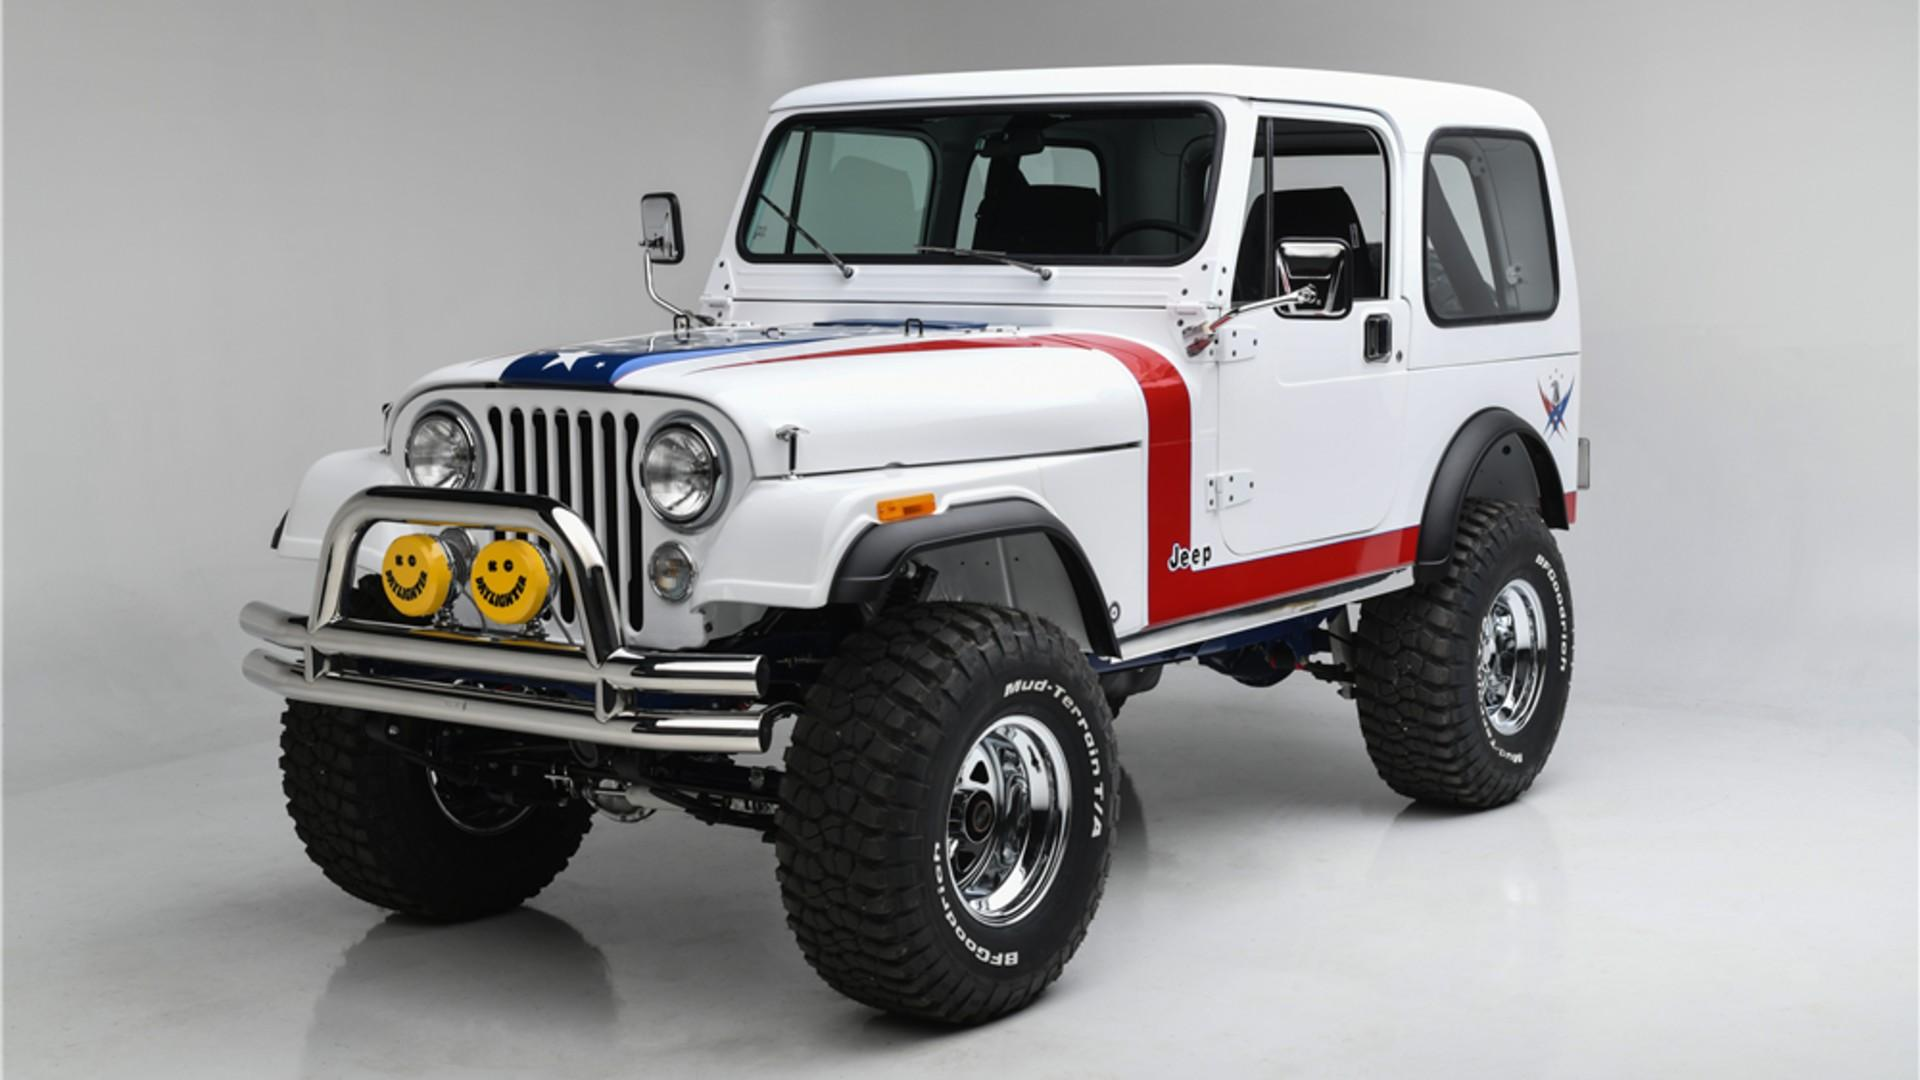 Gas Monkey Garage Jeep CJ7 Restomod Raises $1.3m For Charity